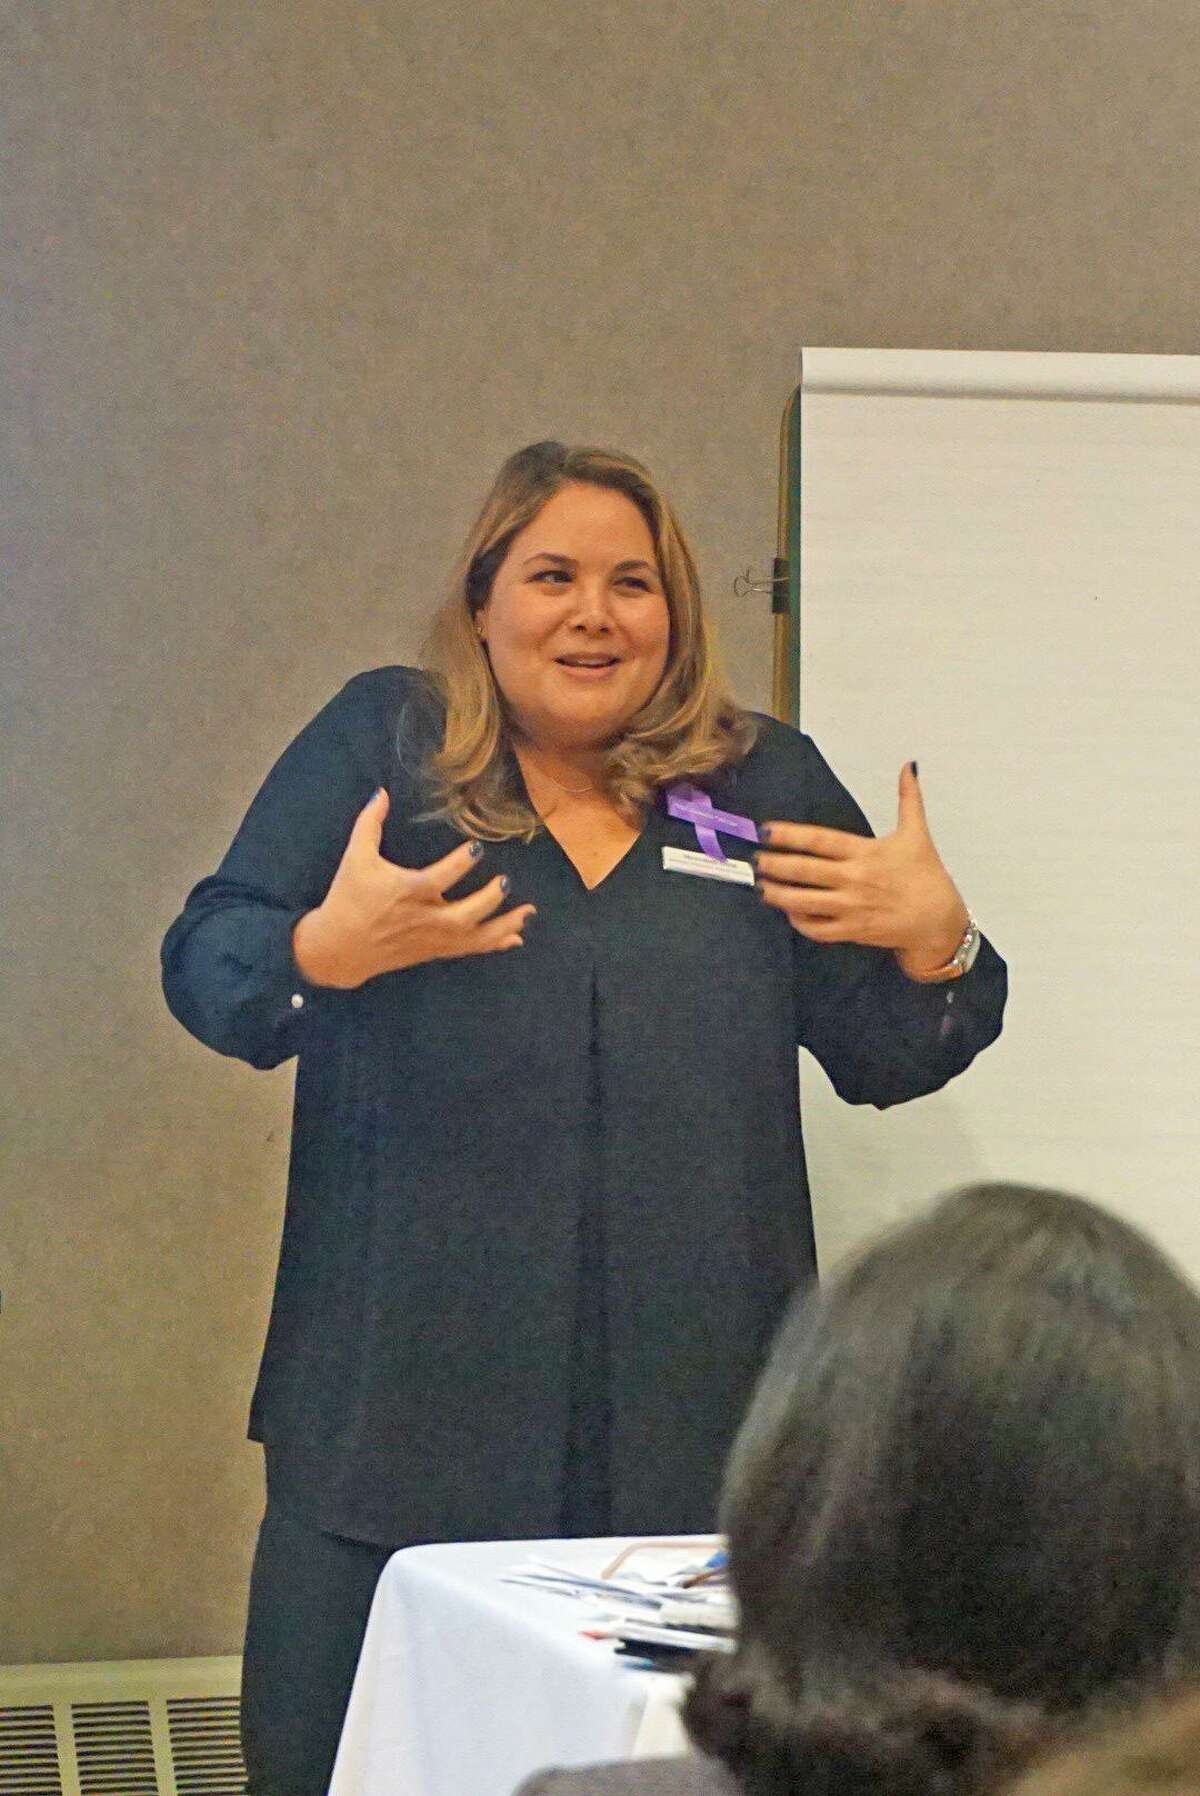 Meredith Gold, director of Domestic Abuse Services at the YWCA Greenwich, explains the impacts of intimate partner violence on victims and their families in a workshop Friday.